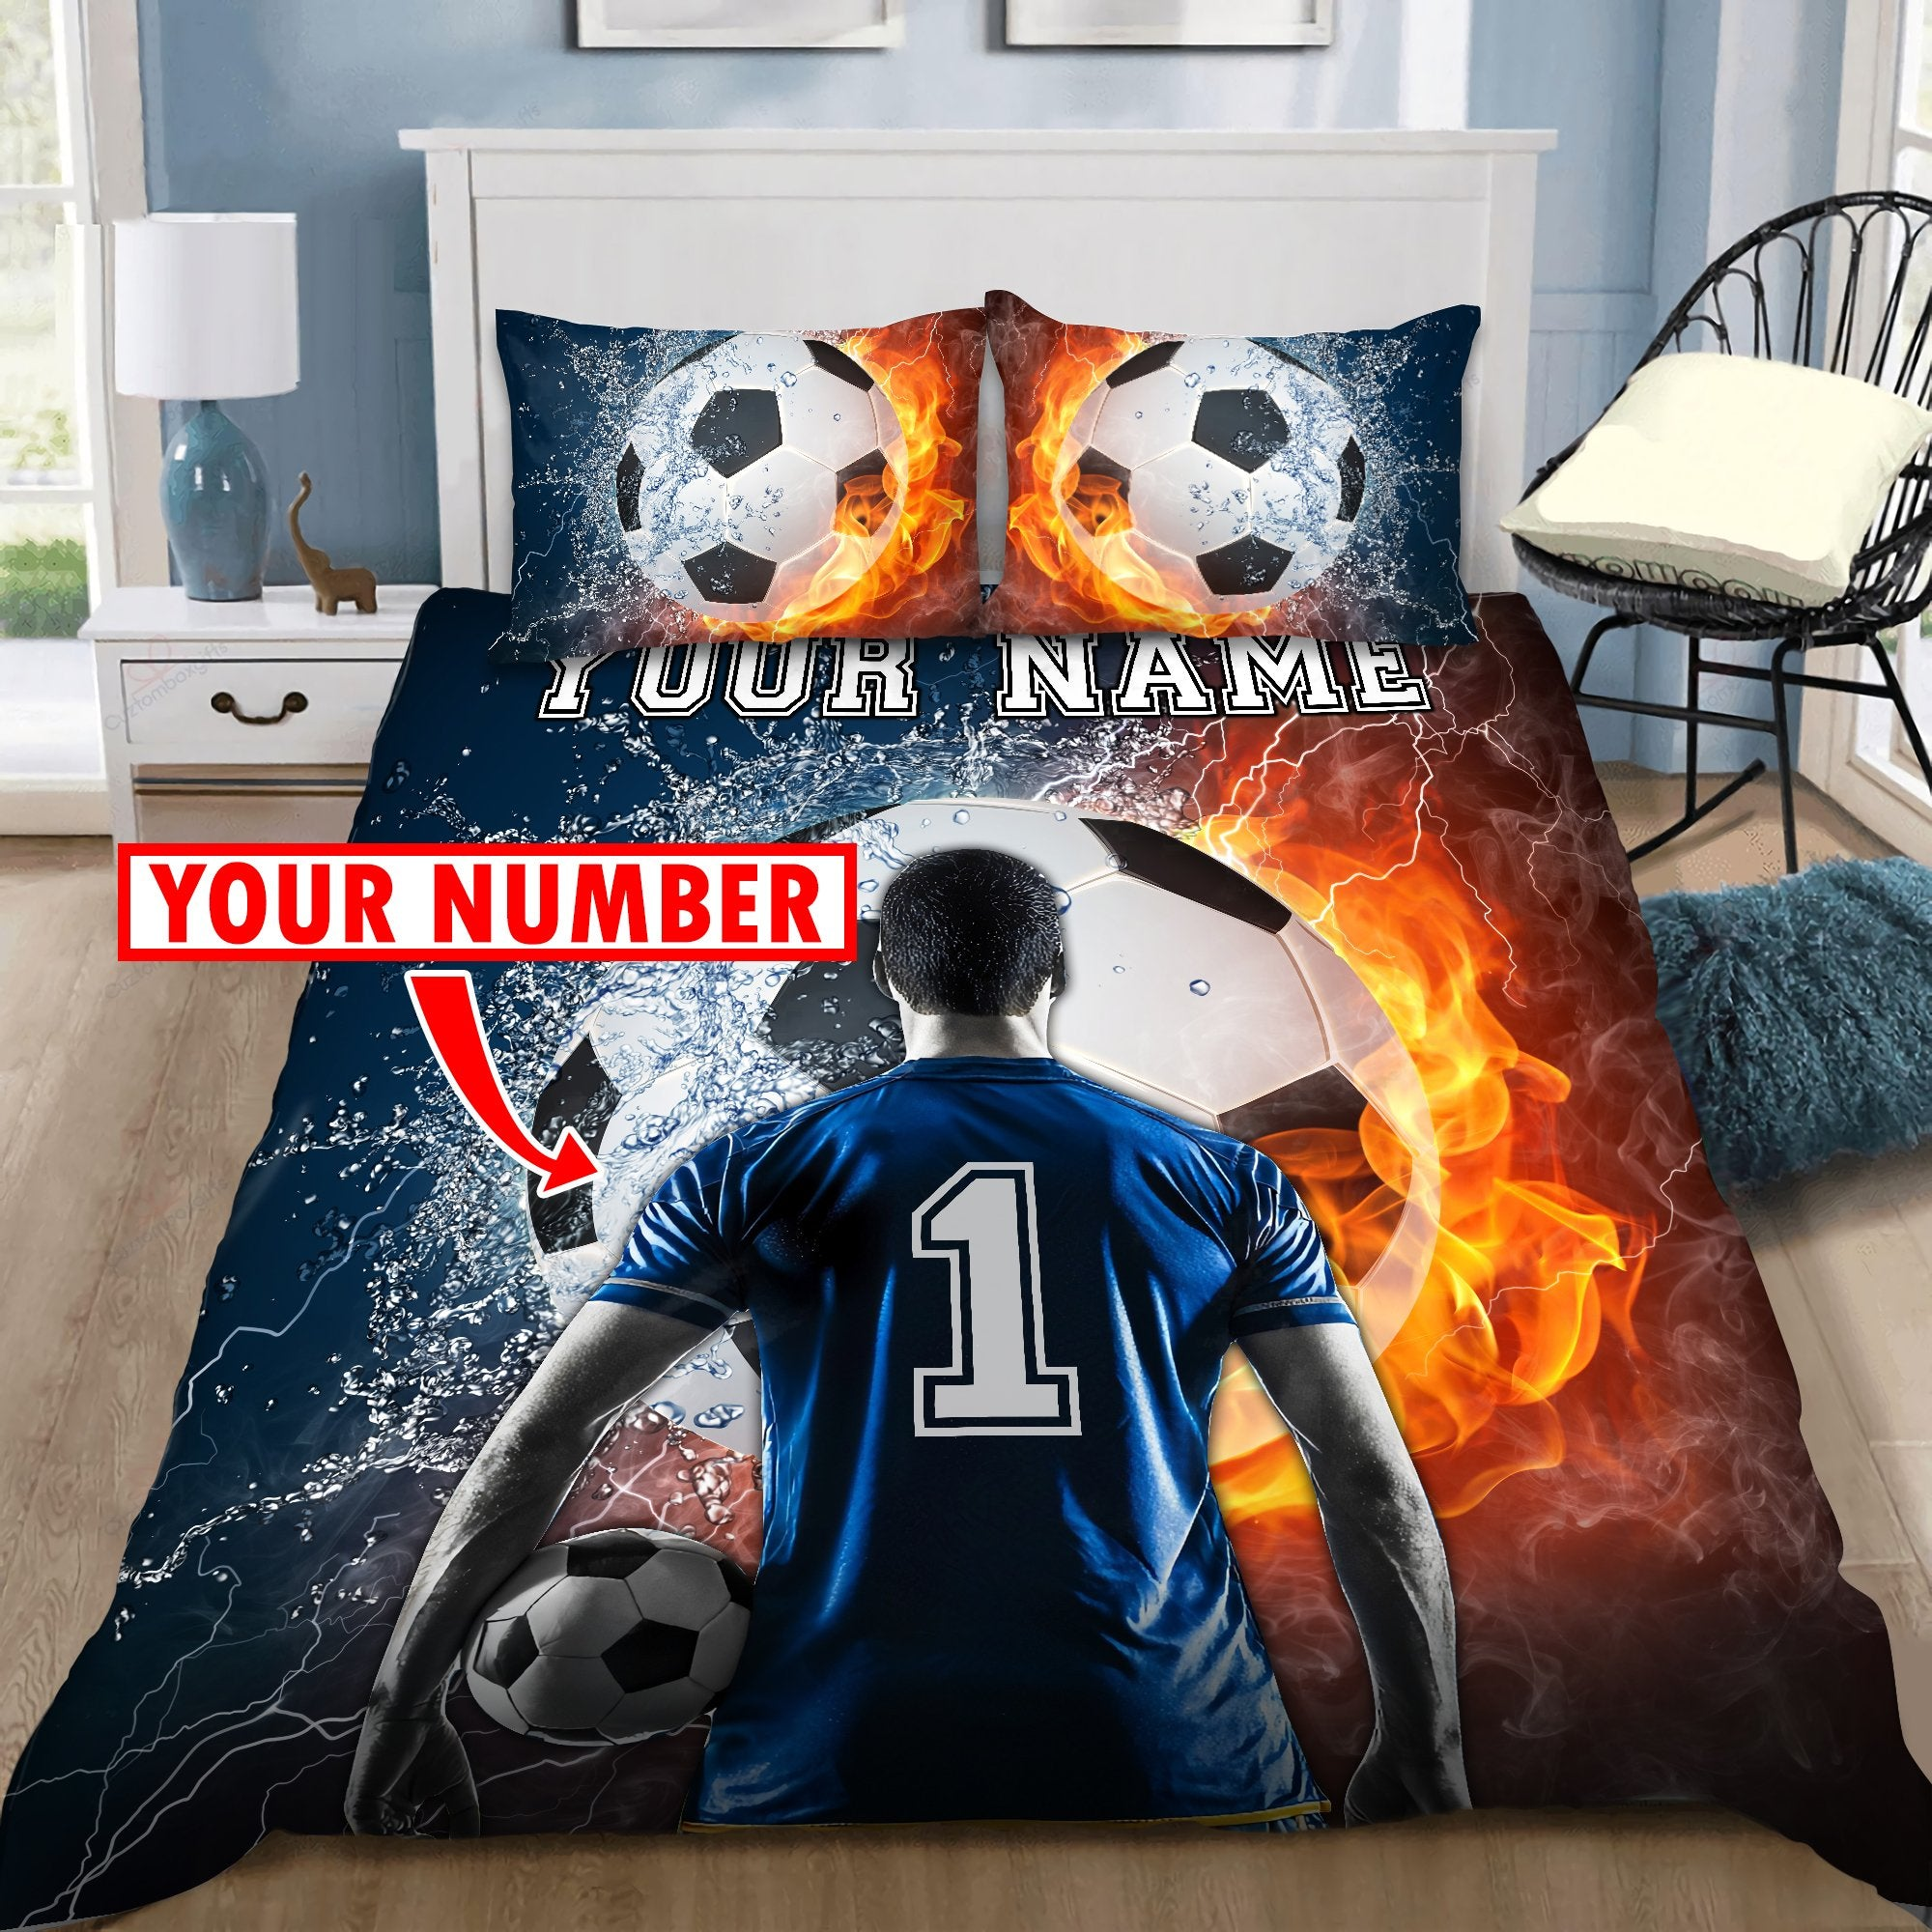 Soccer Love Custom Bedding Set with Your Name and Your Number DQB07102010-Quilt-SUN-King-Vibe Cosy™